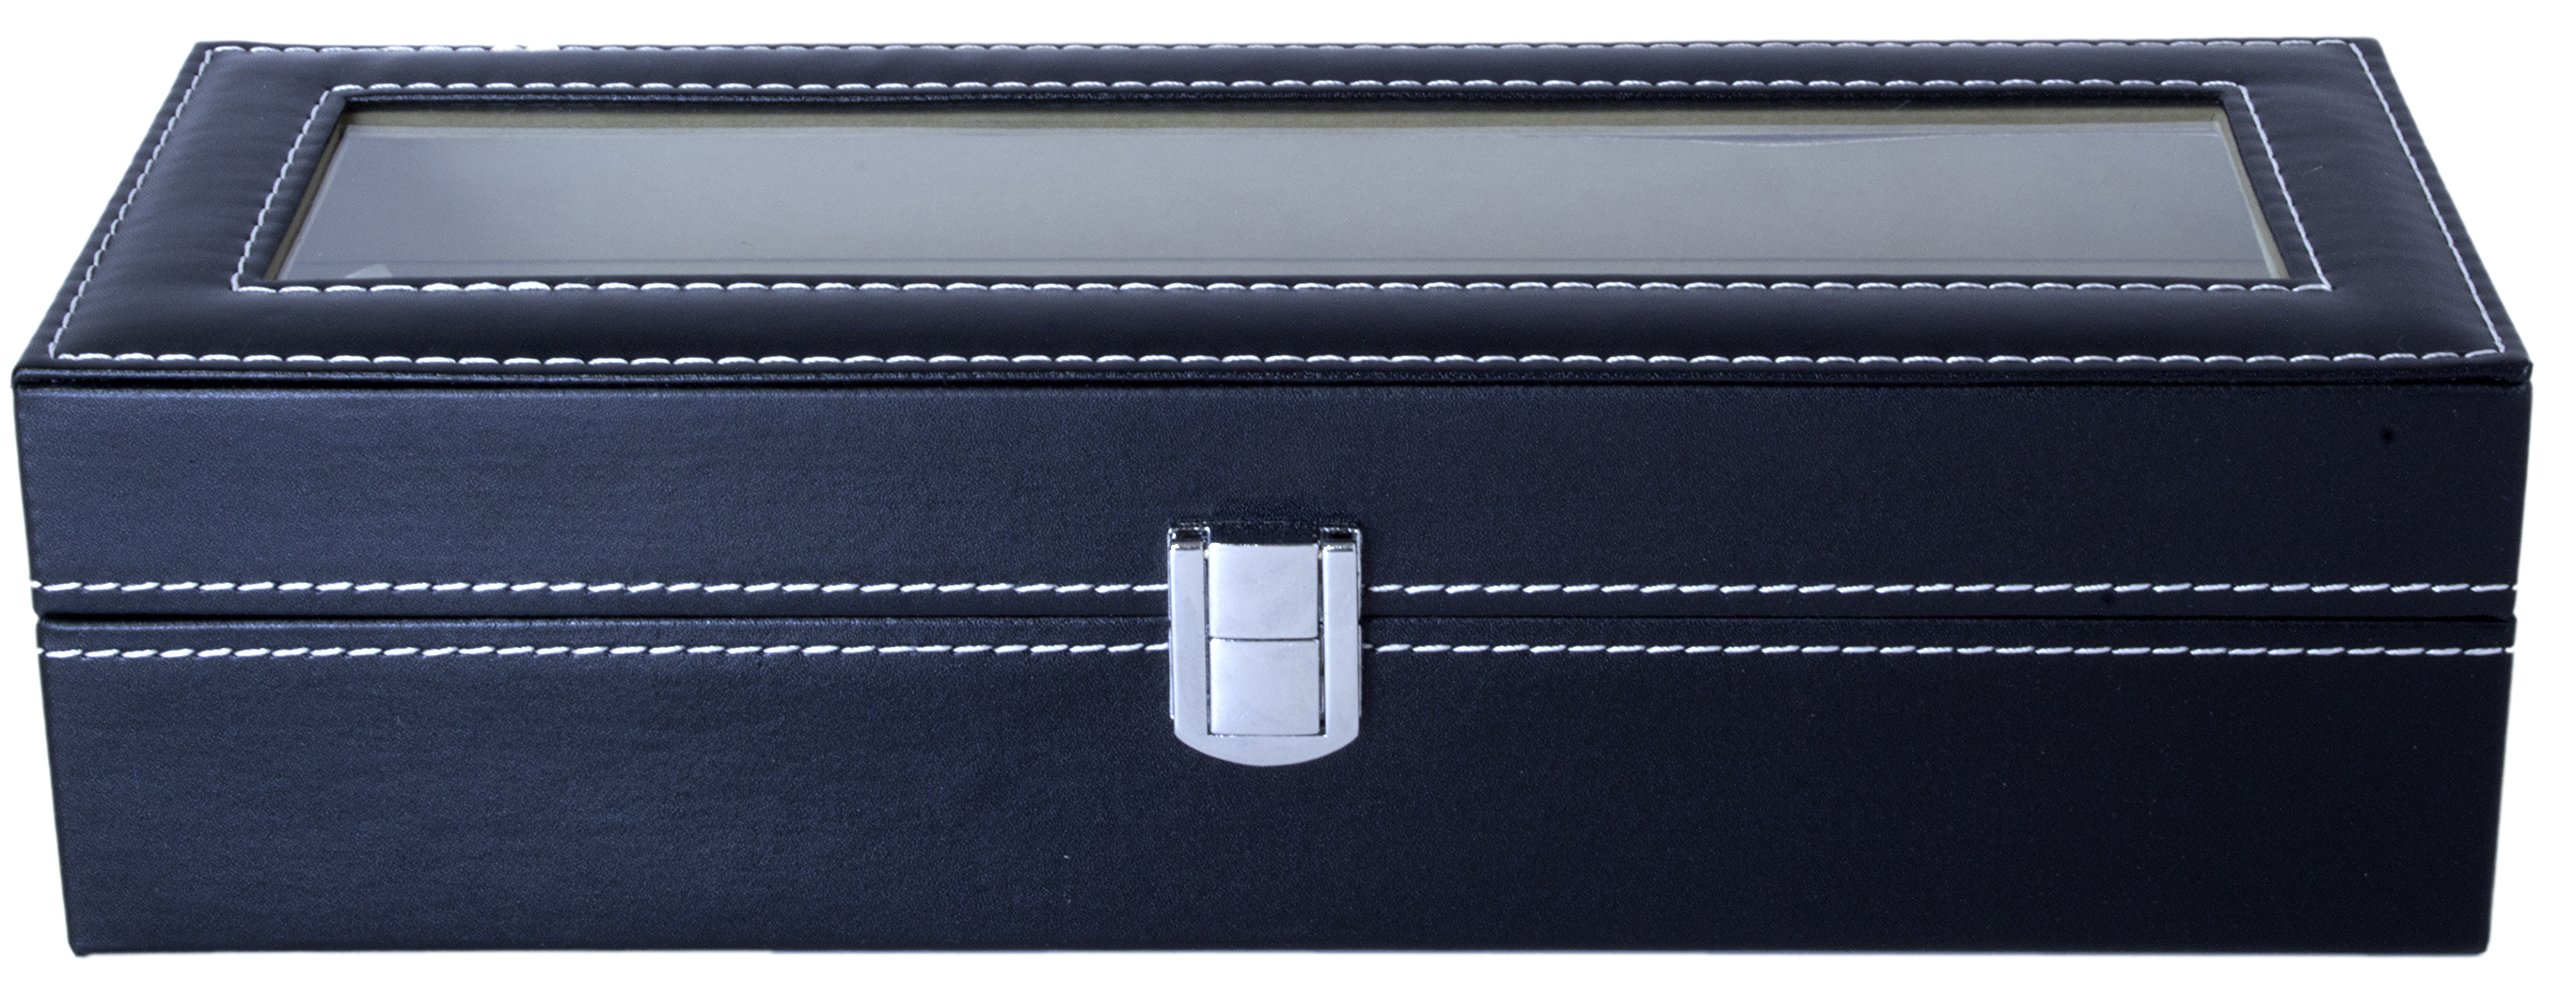 Royal Brands Square Mens Watch Display Box with Glass Top Jewelry Case Organizer (6 Slots)